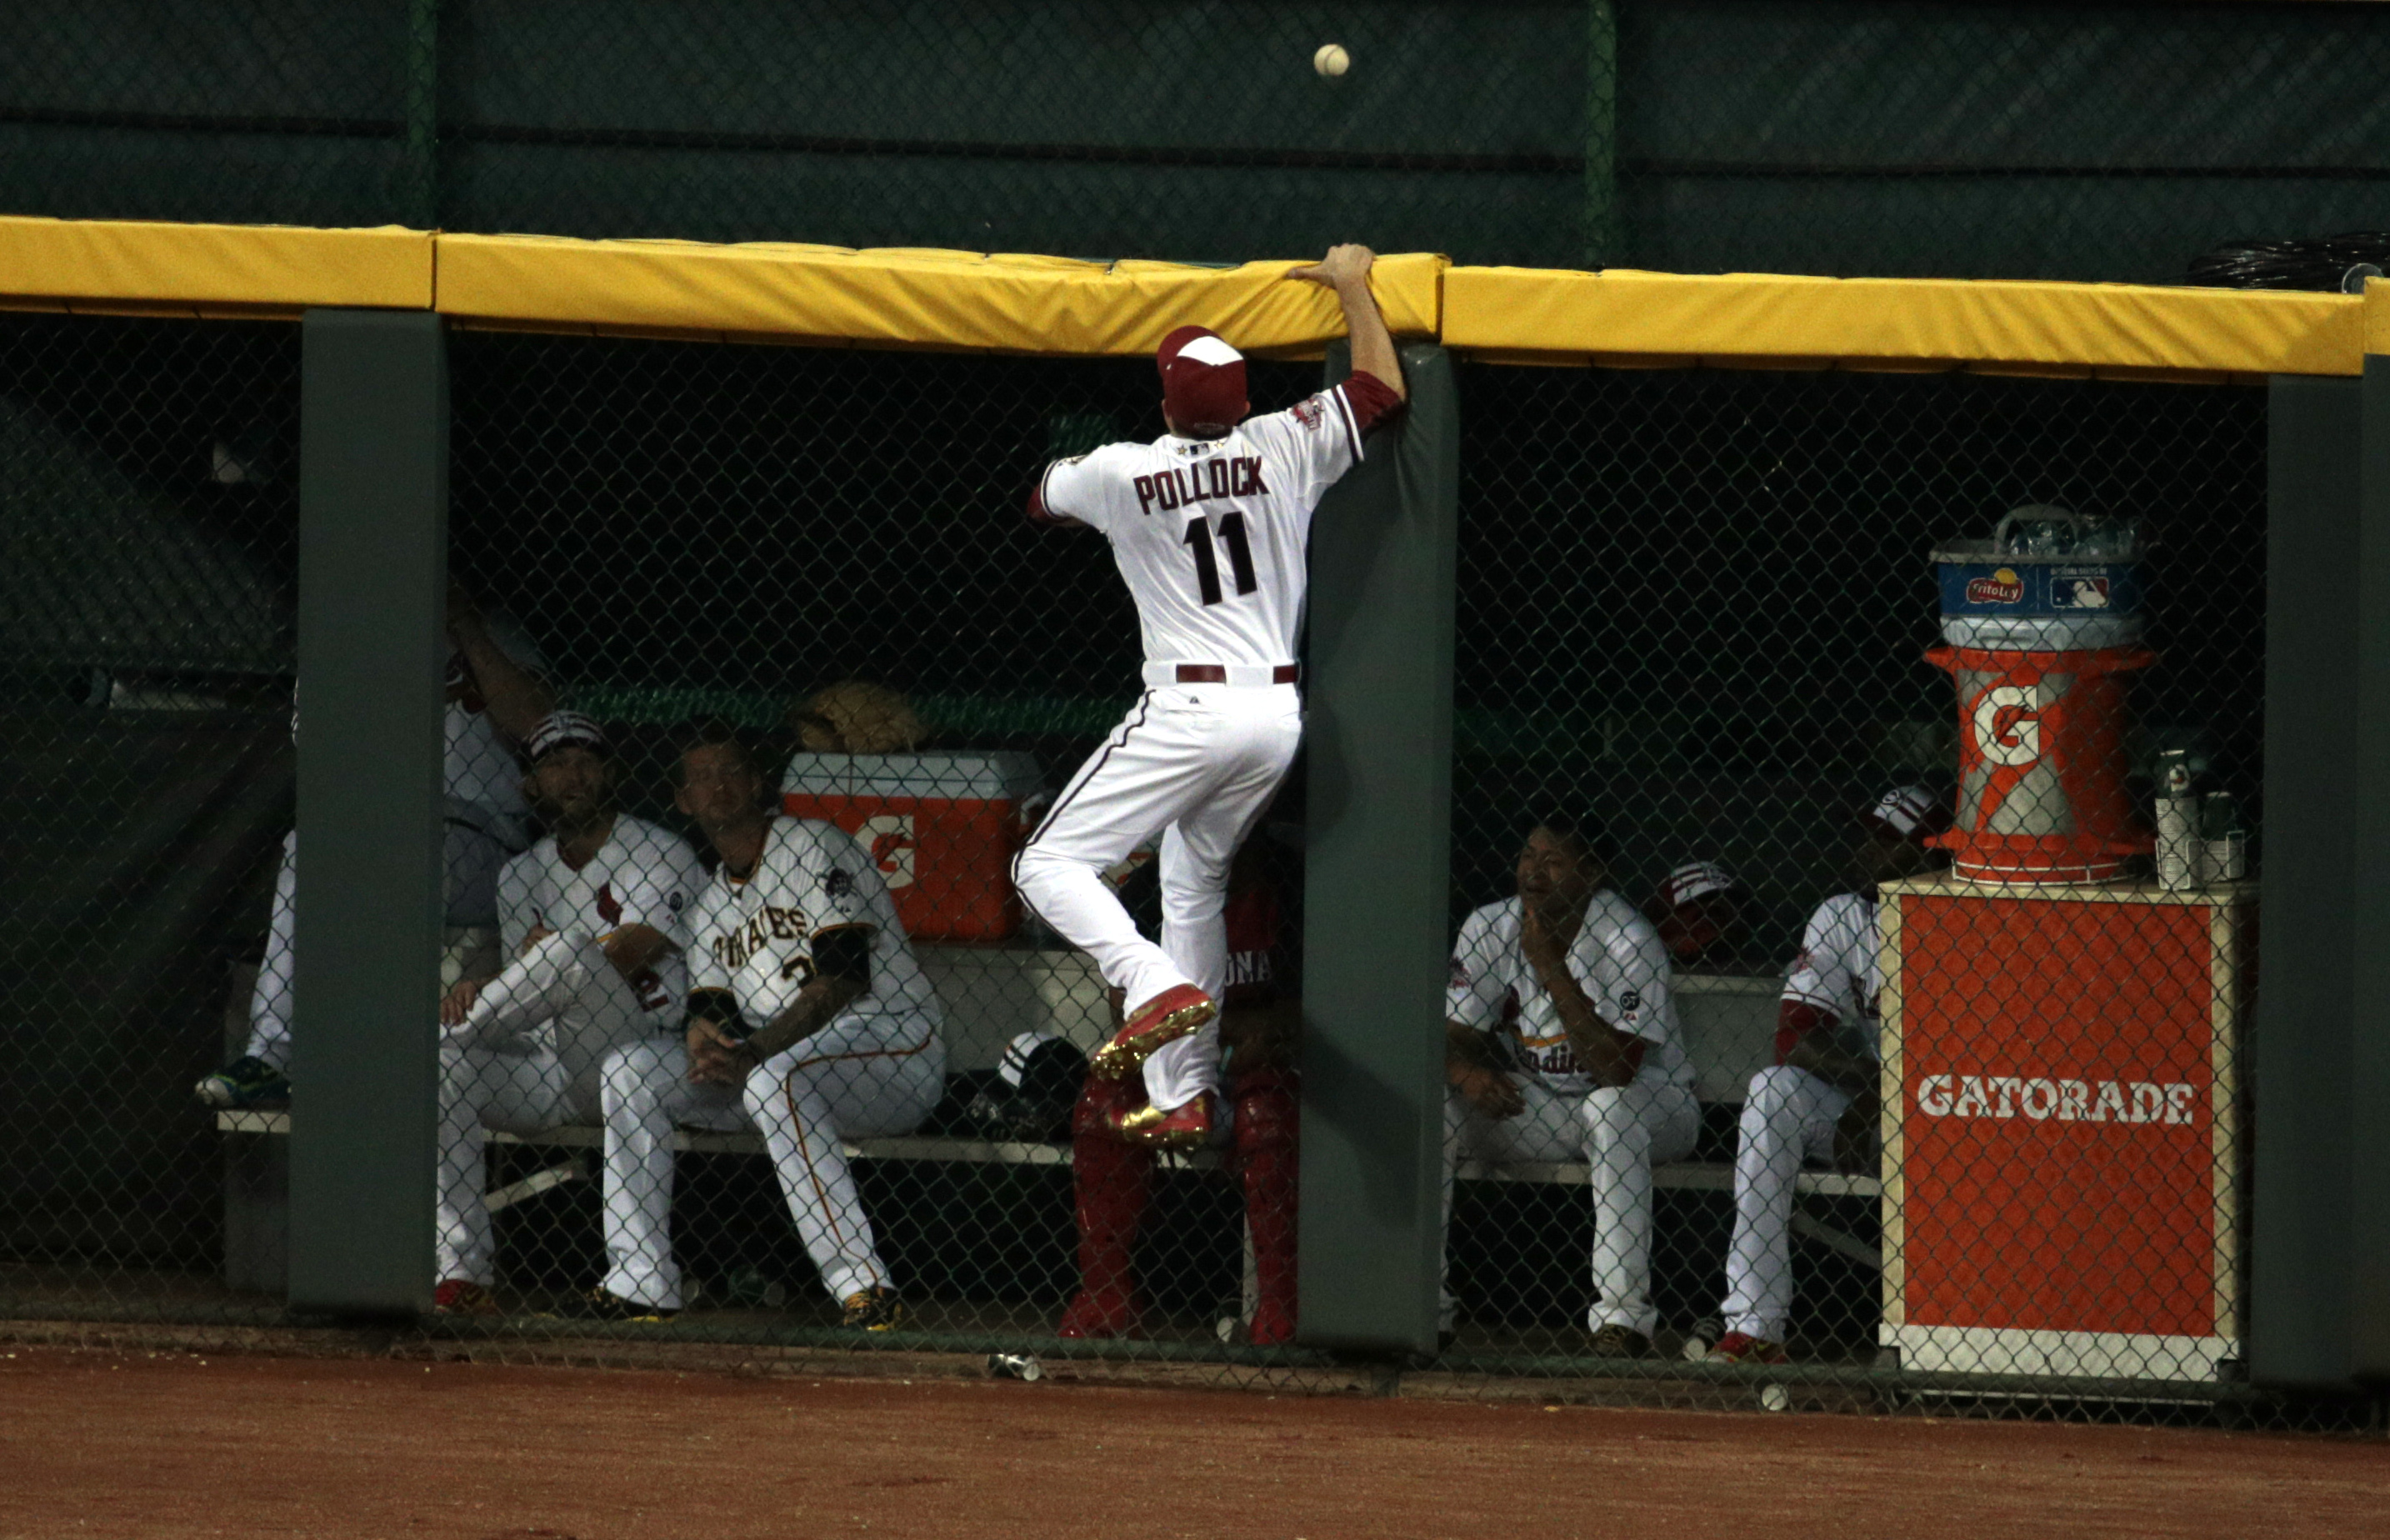 National League outfielder A.J. Pollock of the Arizona Diamondbacks cannot get to a home run hit by American League second baseman Brian Dozier of the Minnesota Twins during the eighth inning of the 2015 MLB All Star Game at Great American Ball Park.